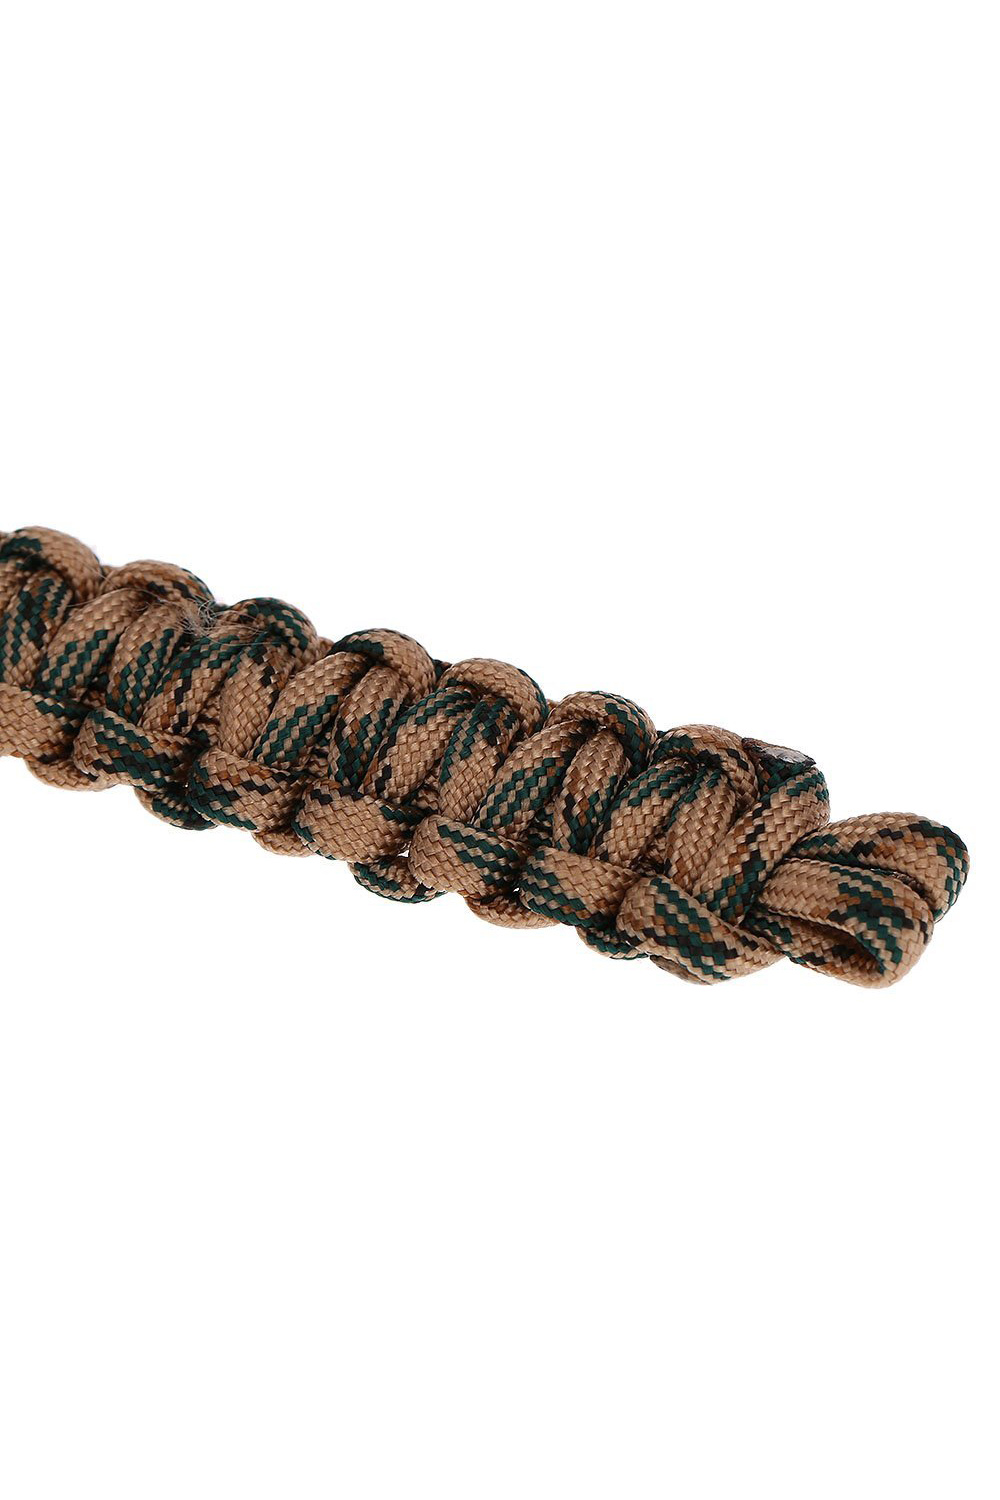 New Paracord Parachute Cord Outdoor Emergency Quick Release Survival  Bracelet With U Bucklewoodland Camo